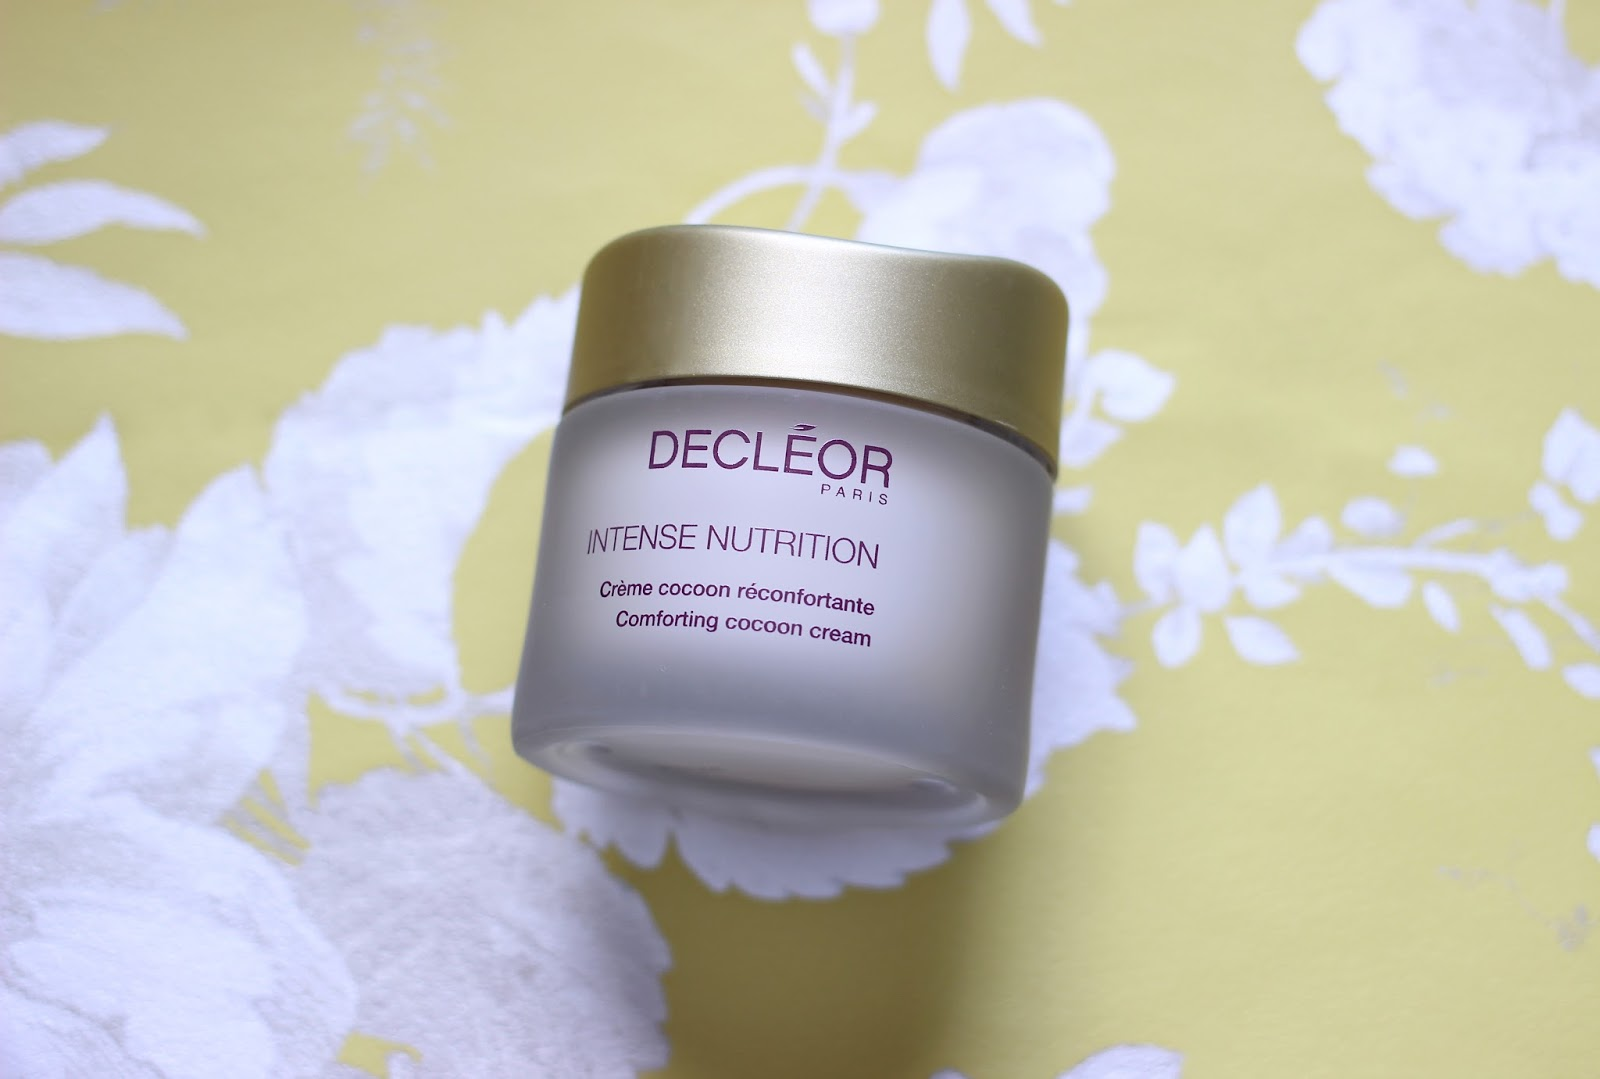 Decleor Intense Nutrition Comforting Cocoon Cream review